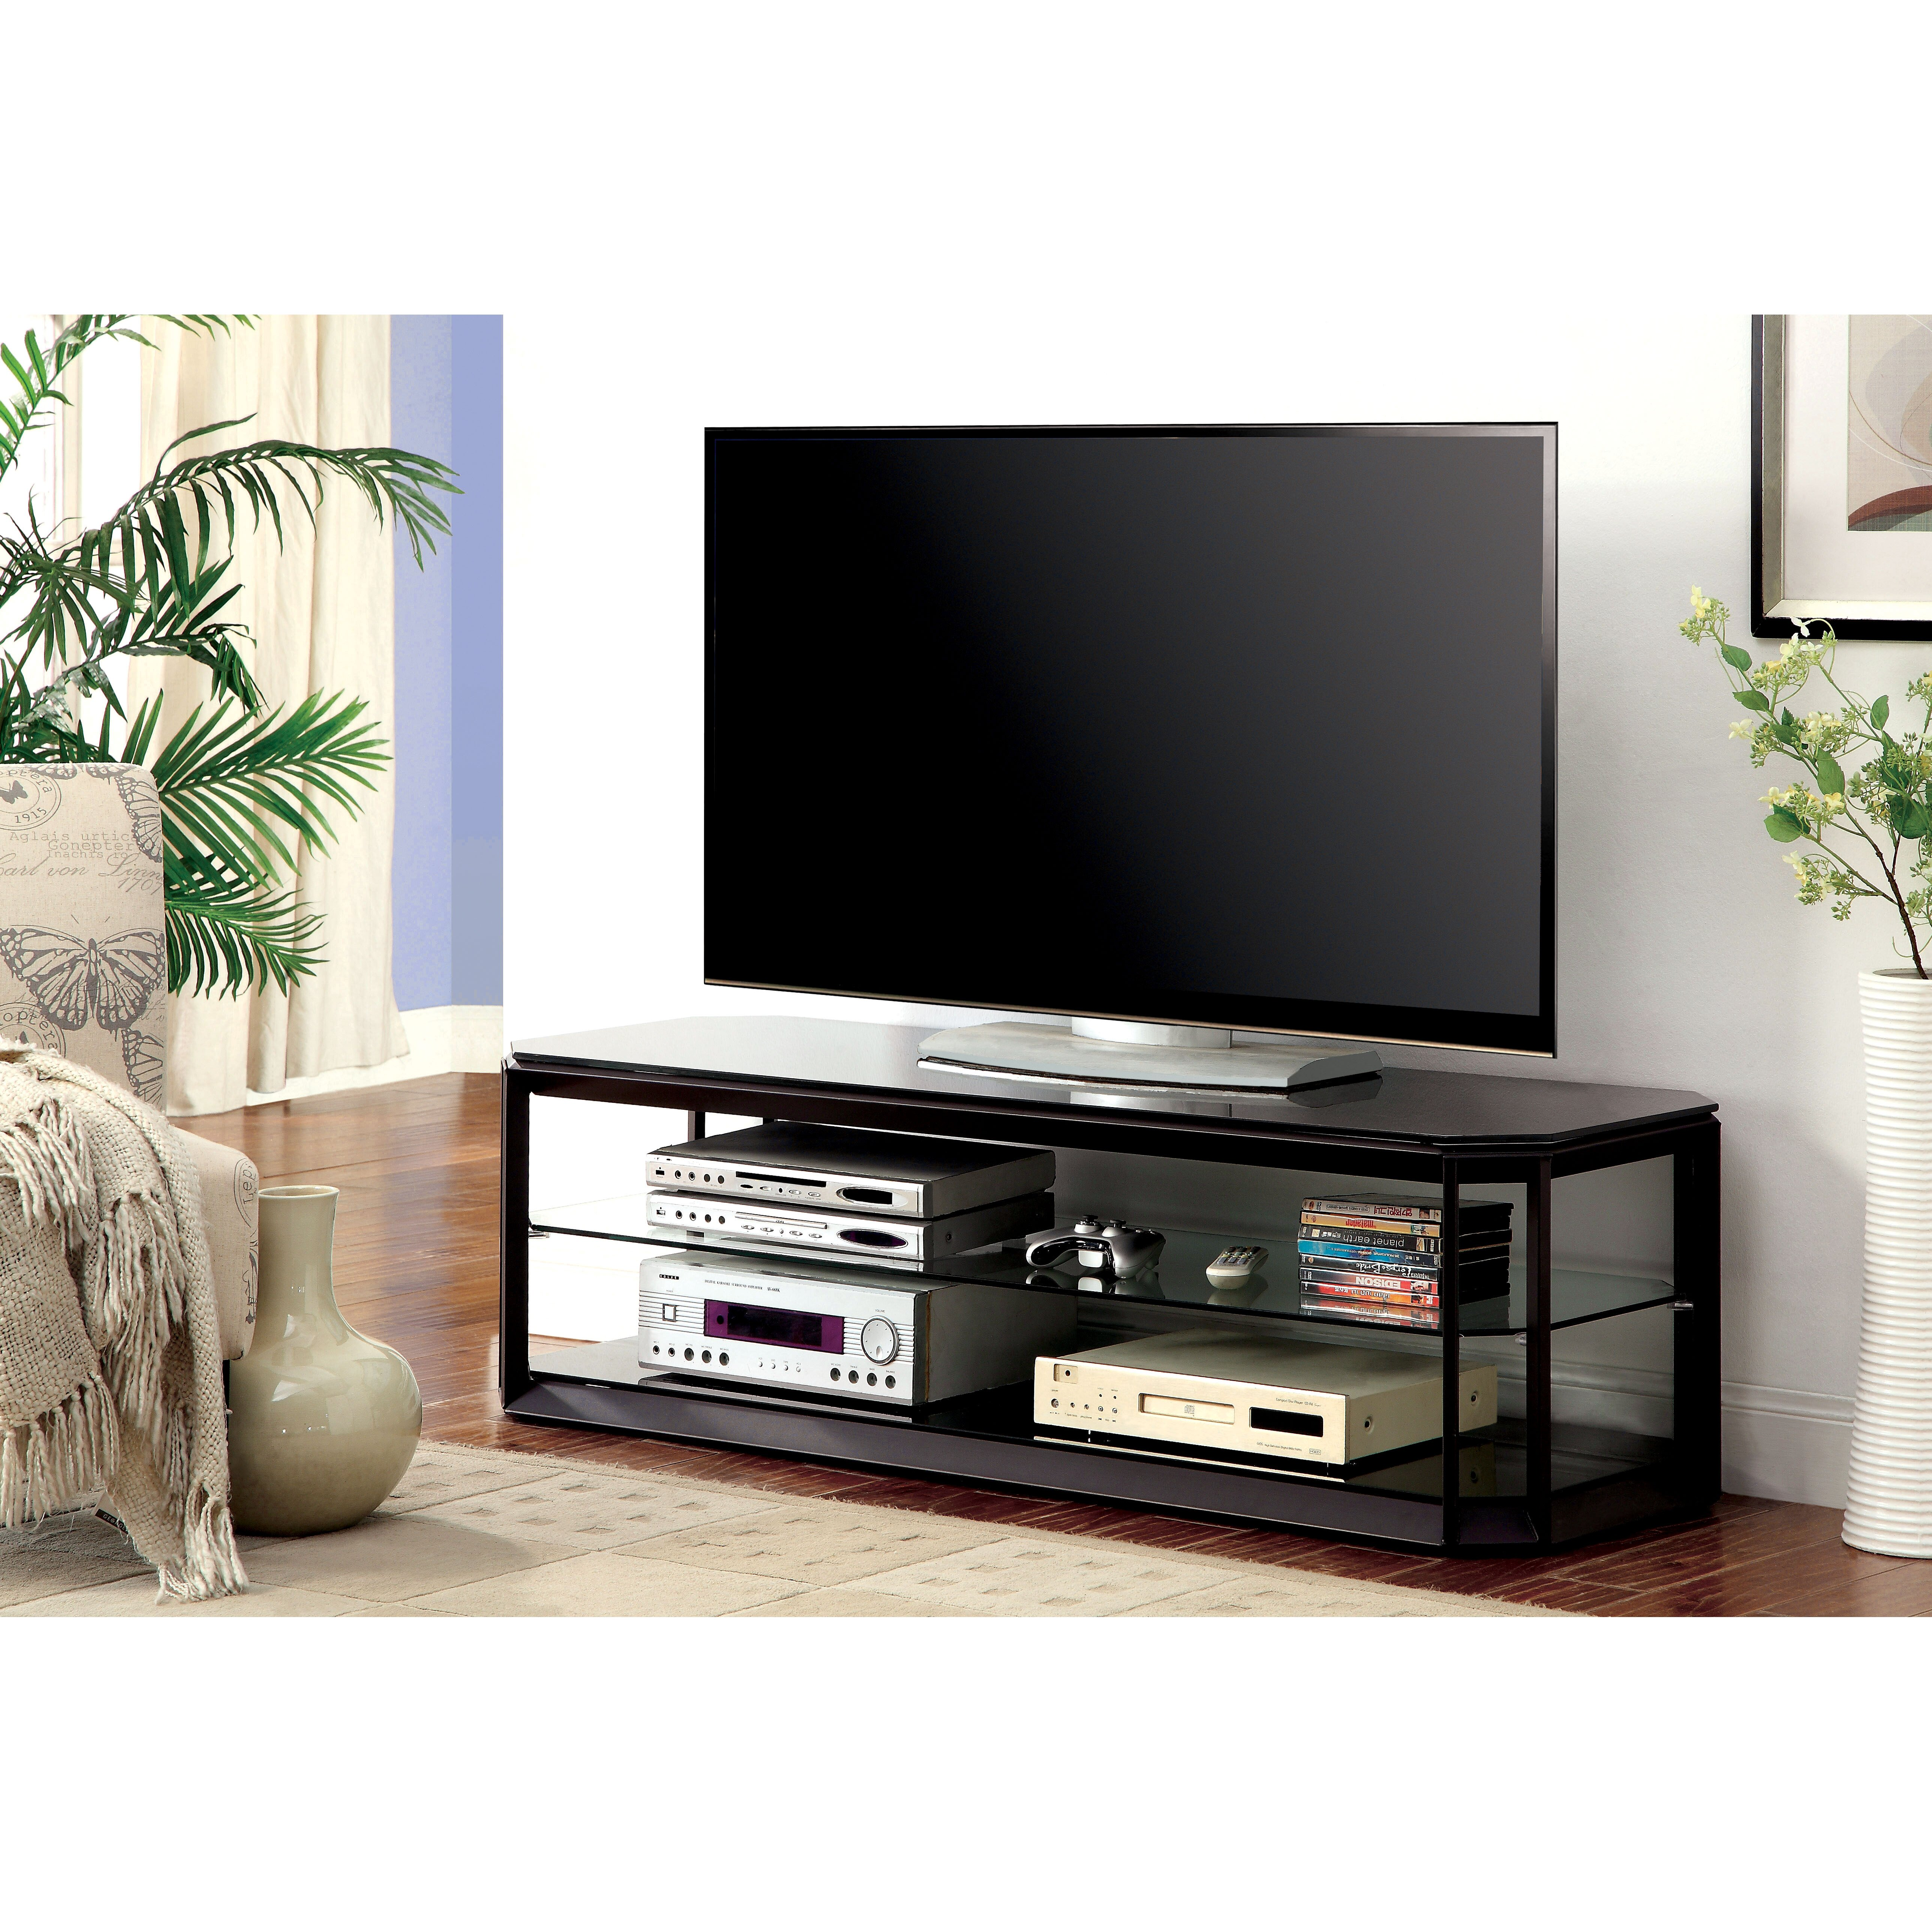 Tv Stand Designs And Price : Hokku designs russell tv stand wayfair